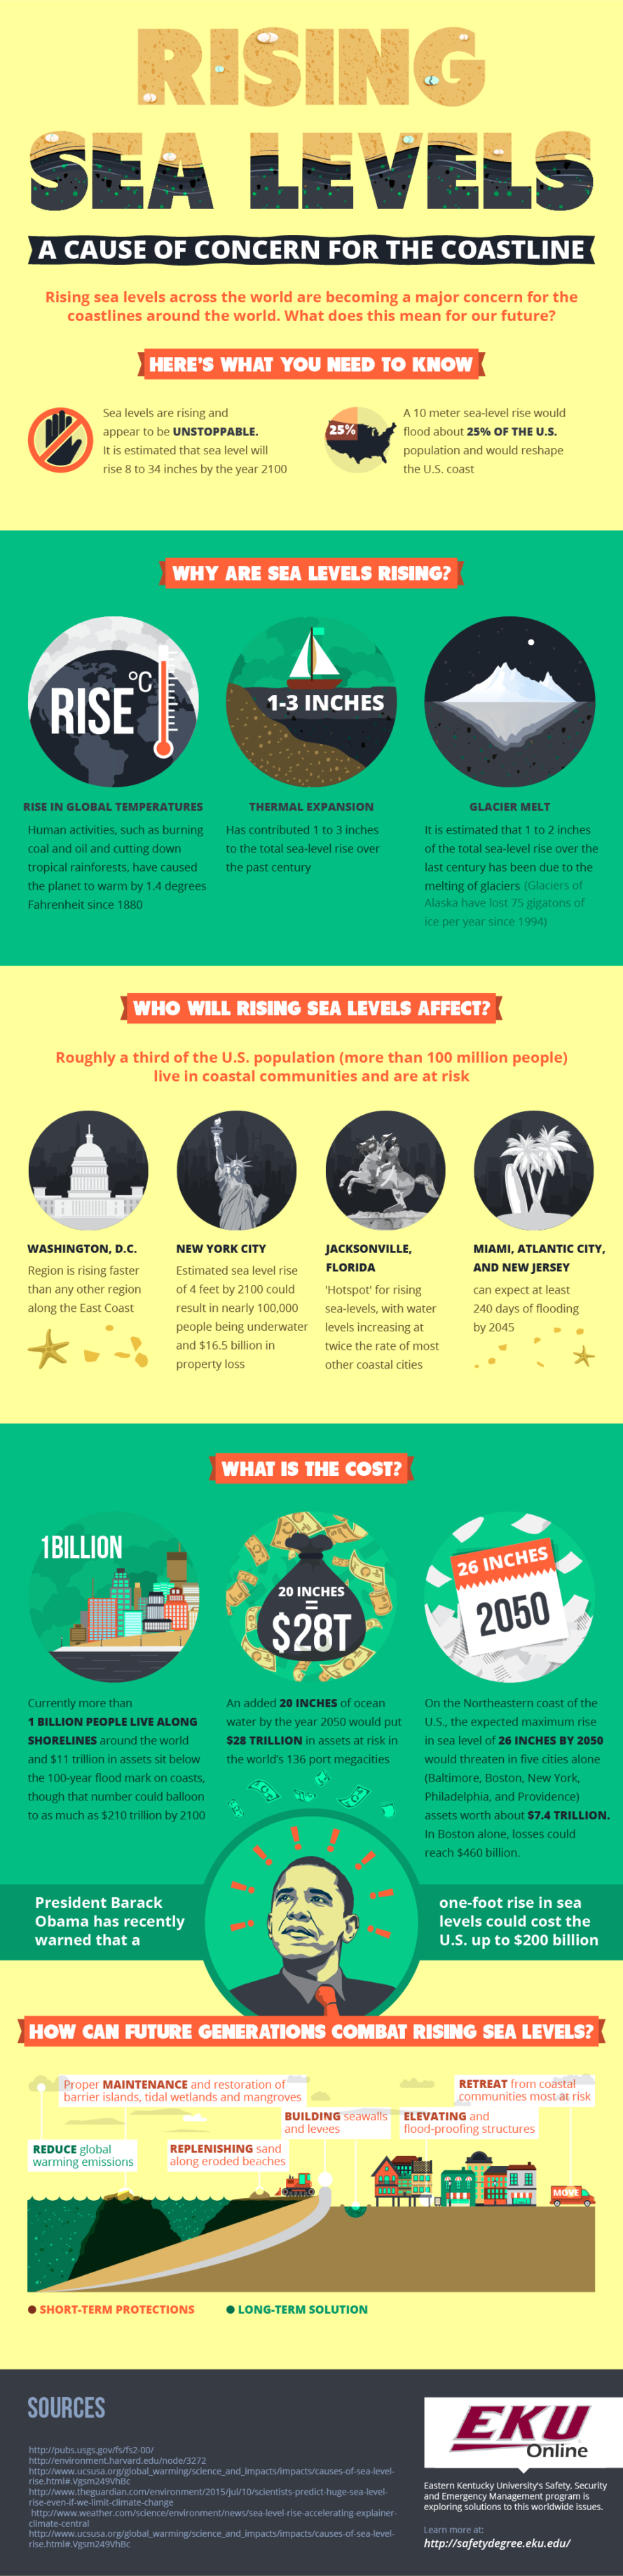 sea level rising, sea level rise, climate change, global warming, impacts of sea level rise, global warming impacts, sea level rise infographic, eastern Kentucky university infographic, natural disasters, flooding